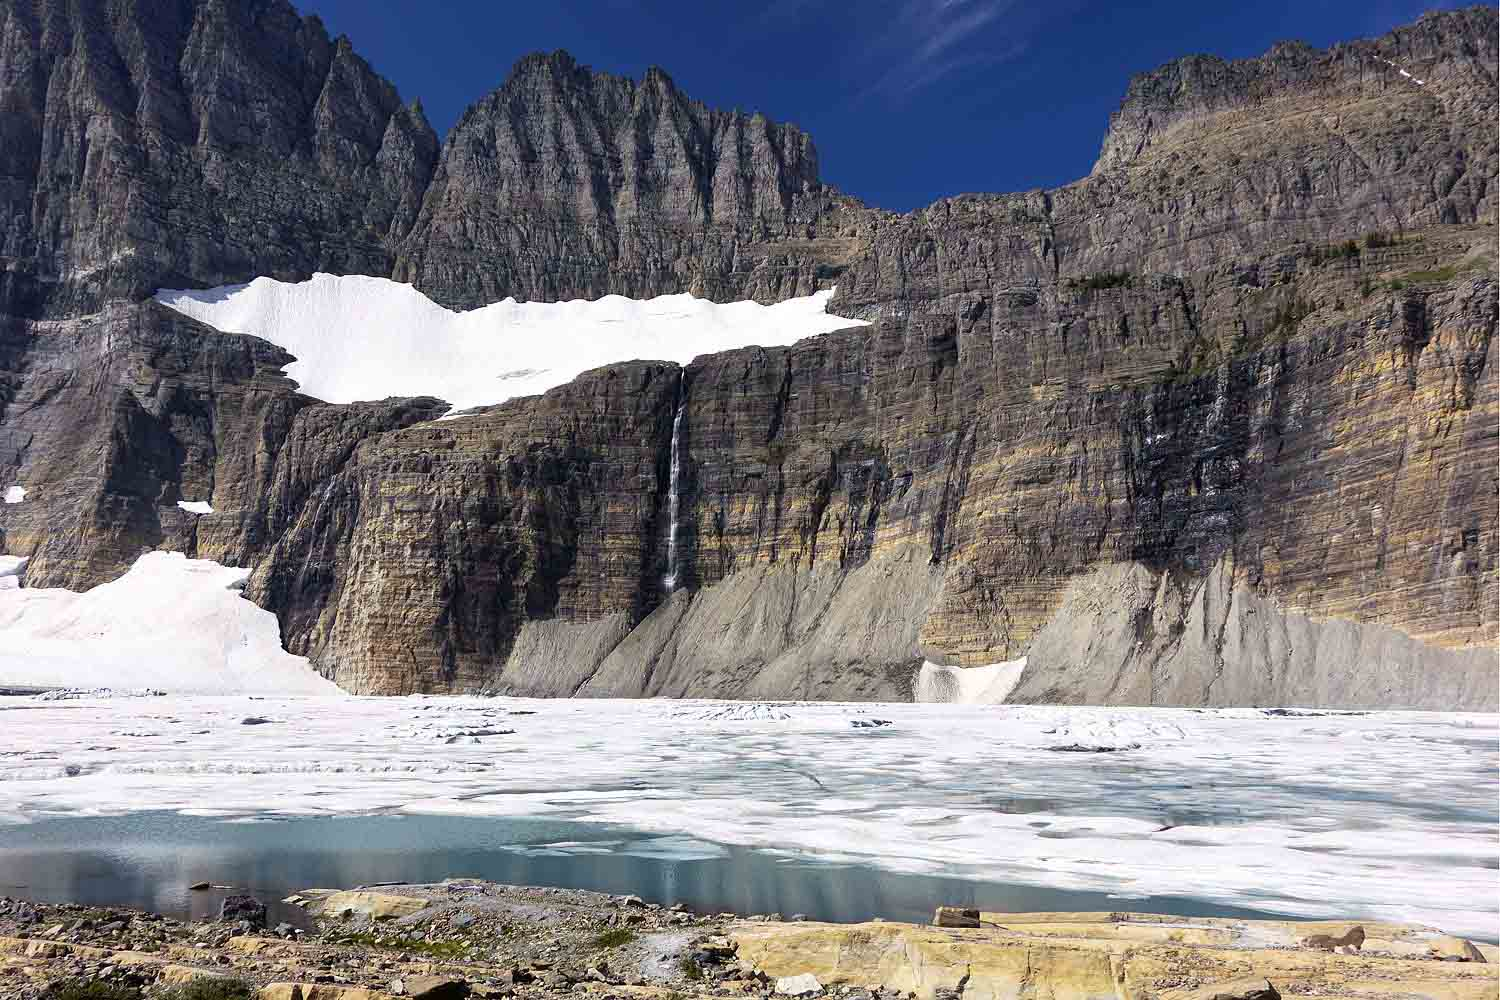 Grinnell Glacier and Lake